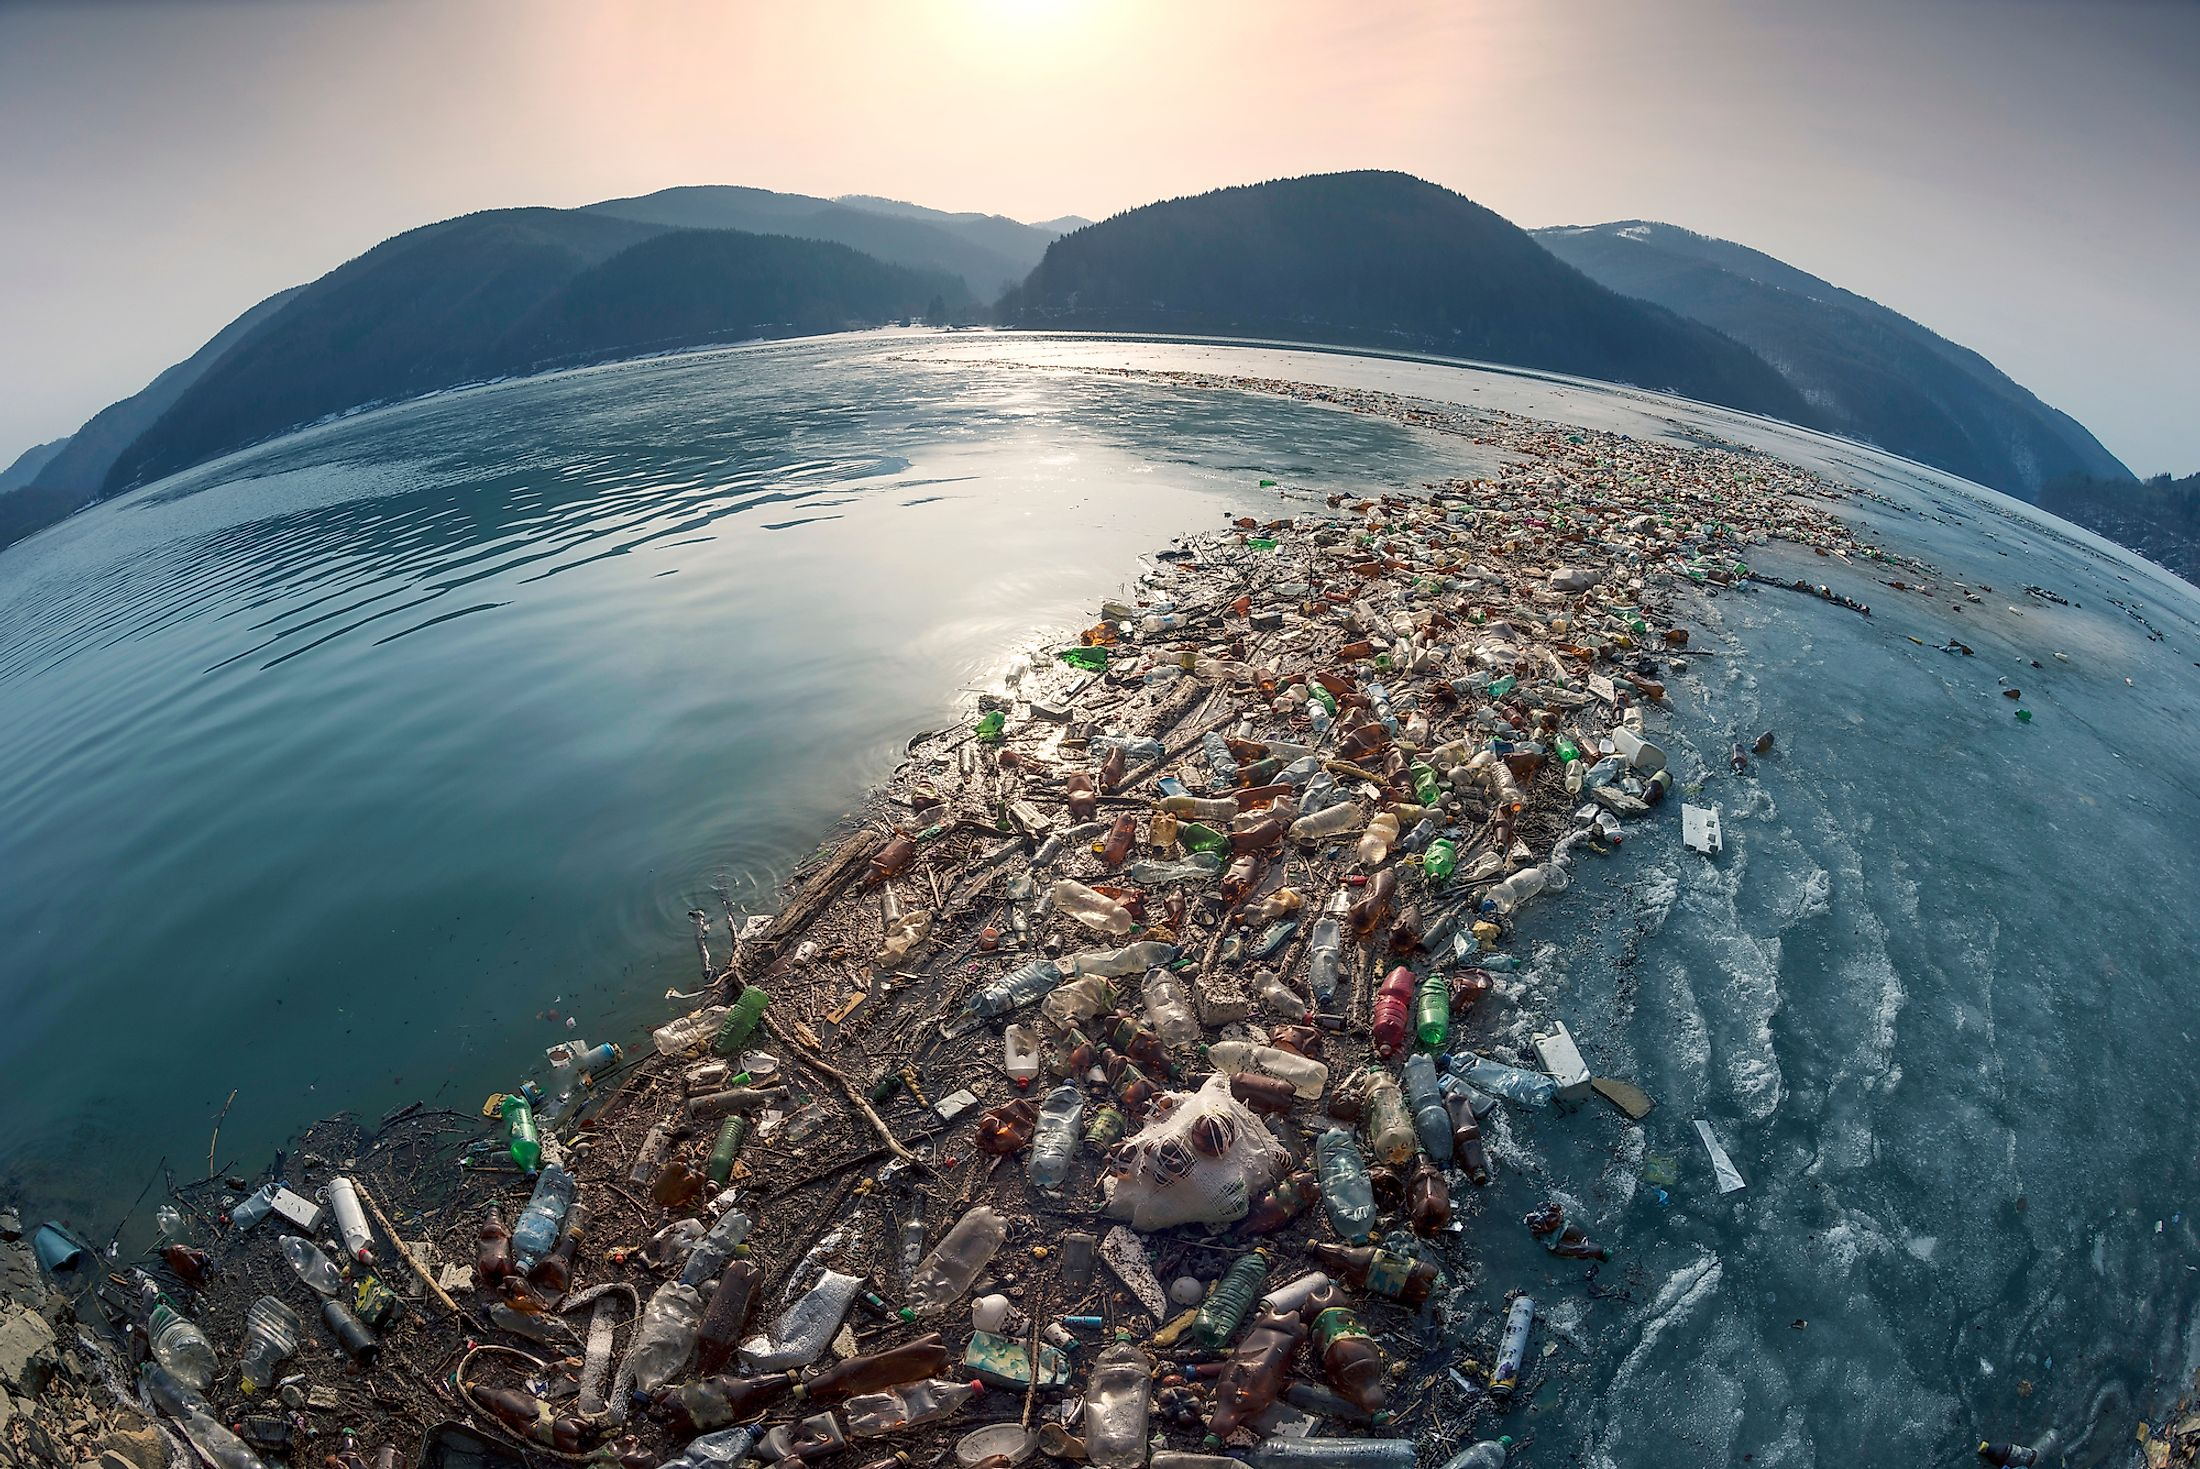 Ocean pollution is a major global threat to today. Image credit:  Roman Mikhailiuk/shutterstock.com